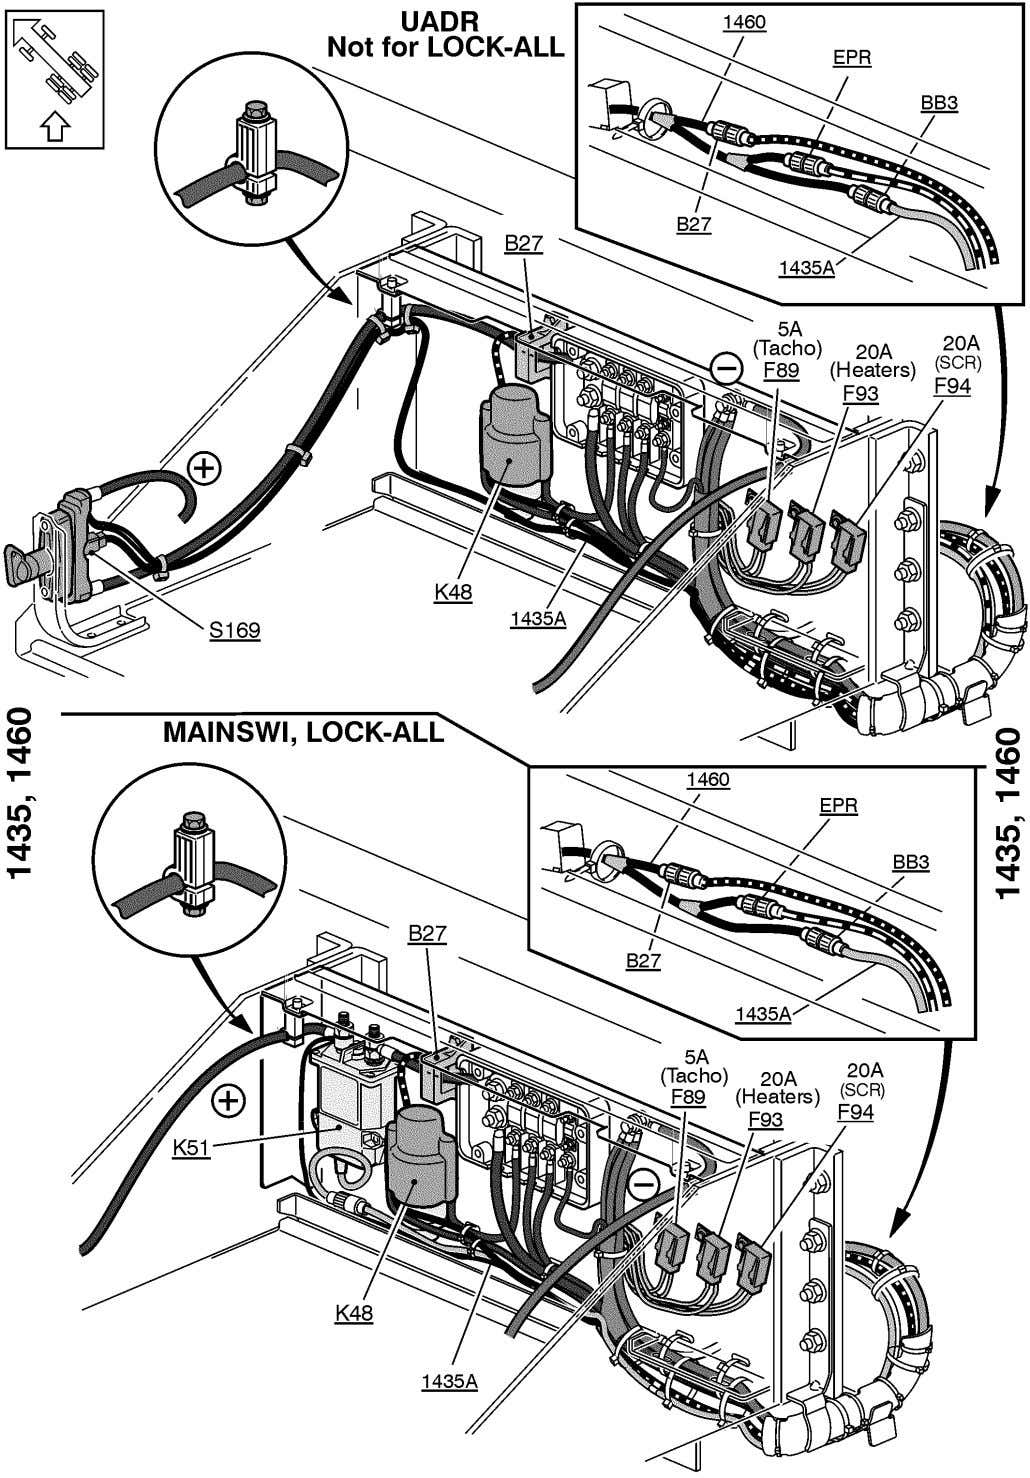 T3022037 Page 200 (298) Wiring diagram